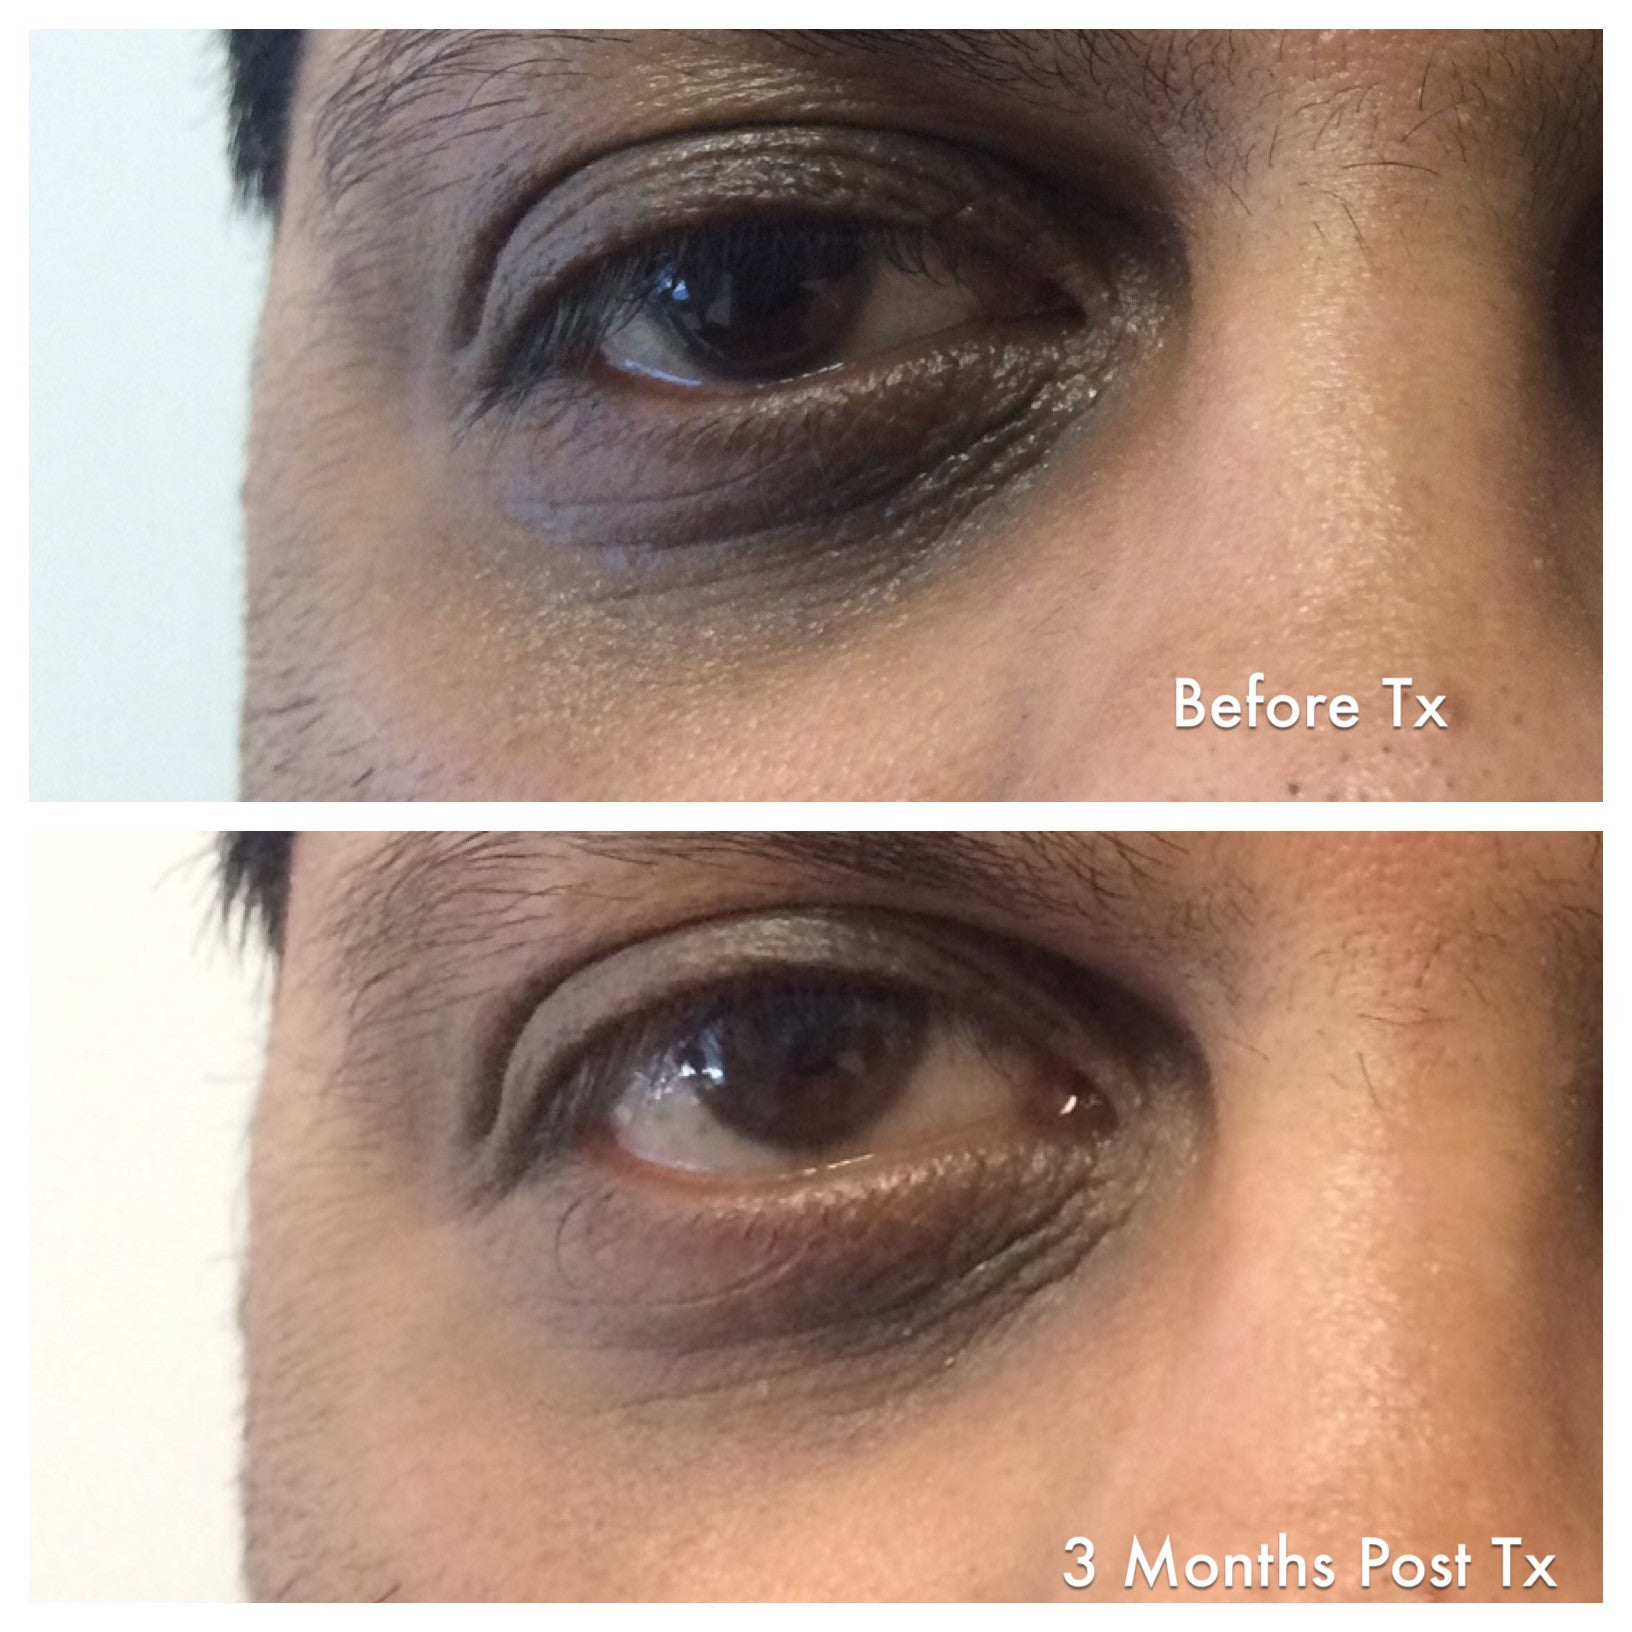 Enriched Retinol Eye Cream Before and After